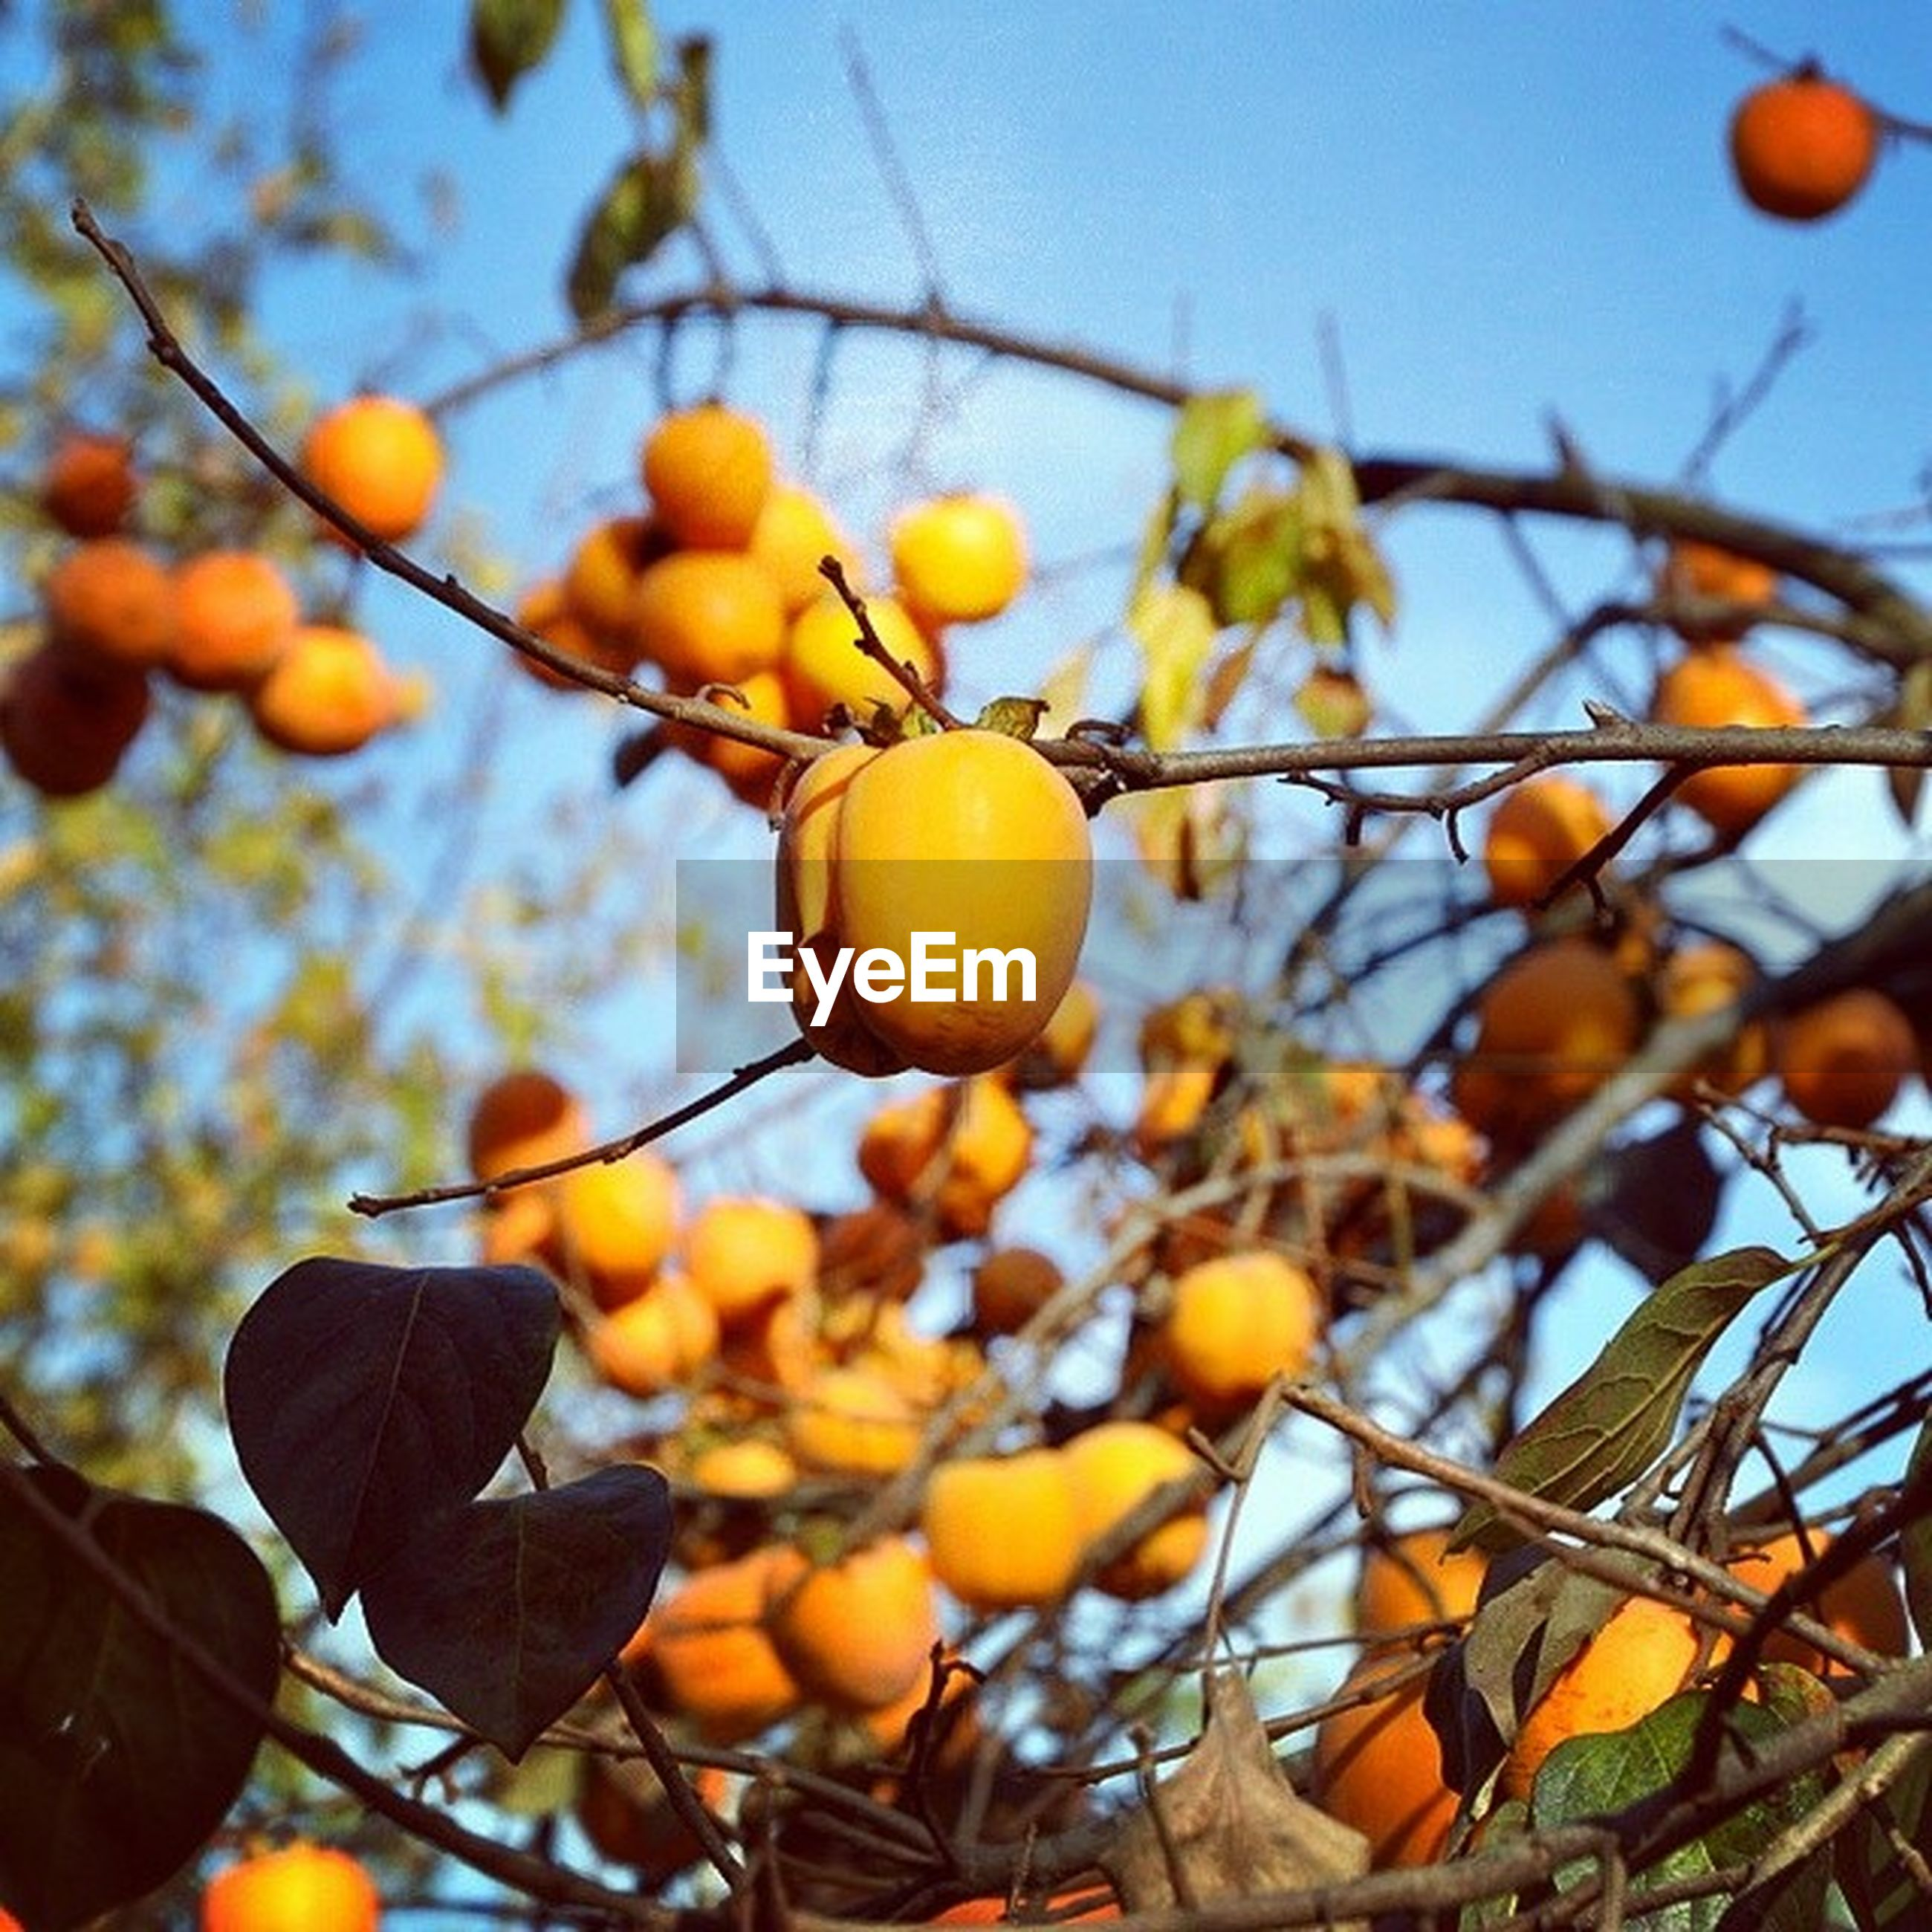 fruit, growth, freshness, branch, tree, focus on foreground, food and drink, close-up, food, yellow, low angle view, nature, leaf, healthy eating, sky, hanging, day, outdoors, sunlight, beauty in nature